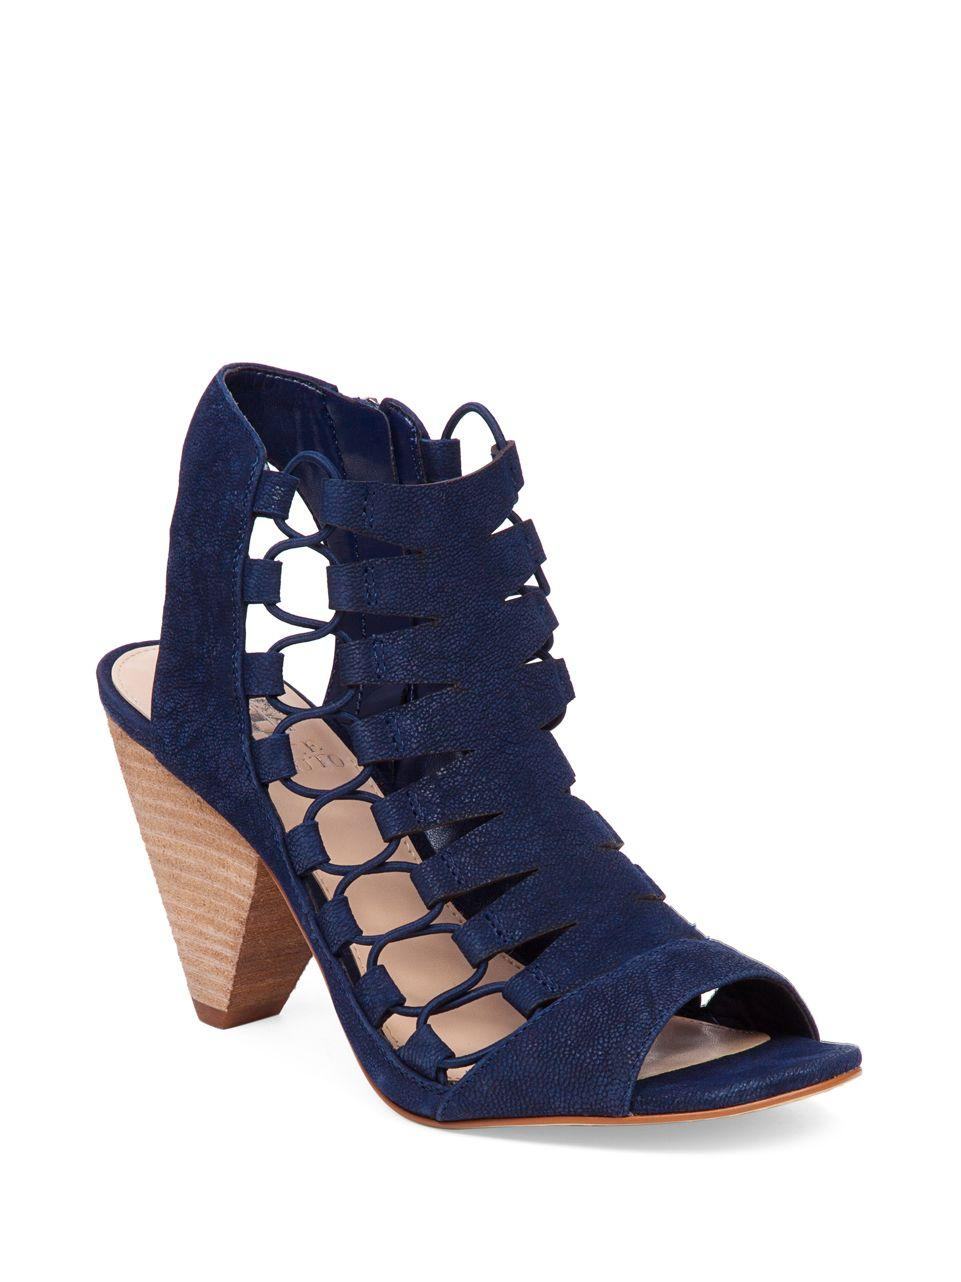 Vince Camuto Leather Eliaz Gladiator Dress Sandals In Blue